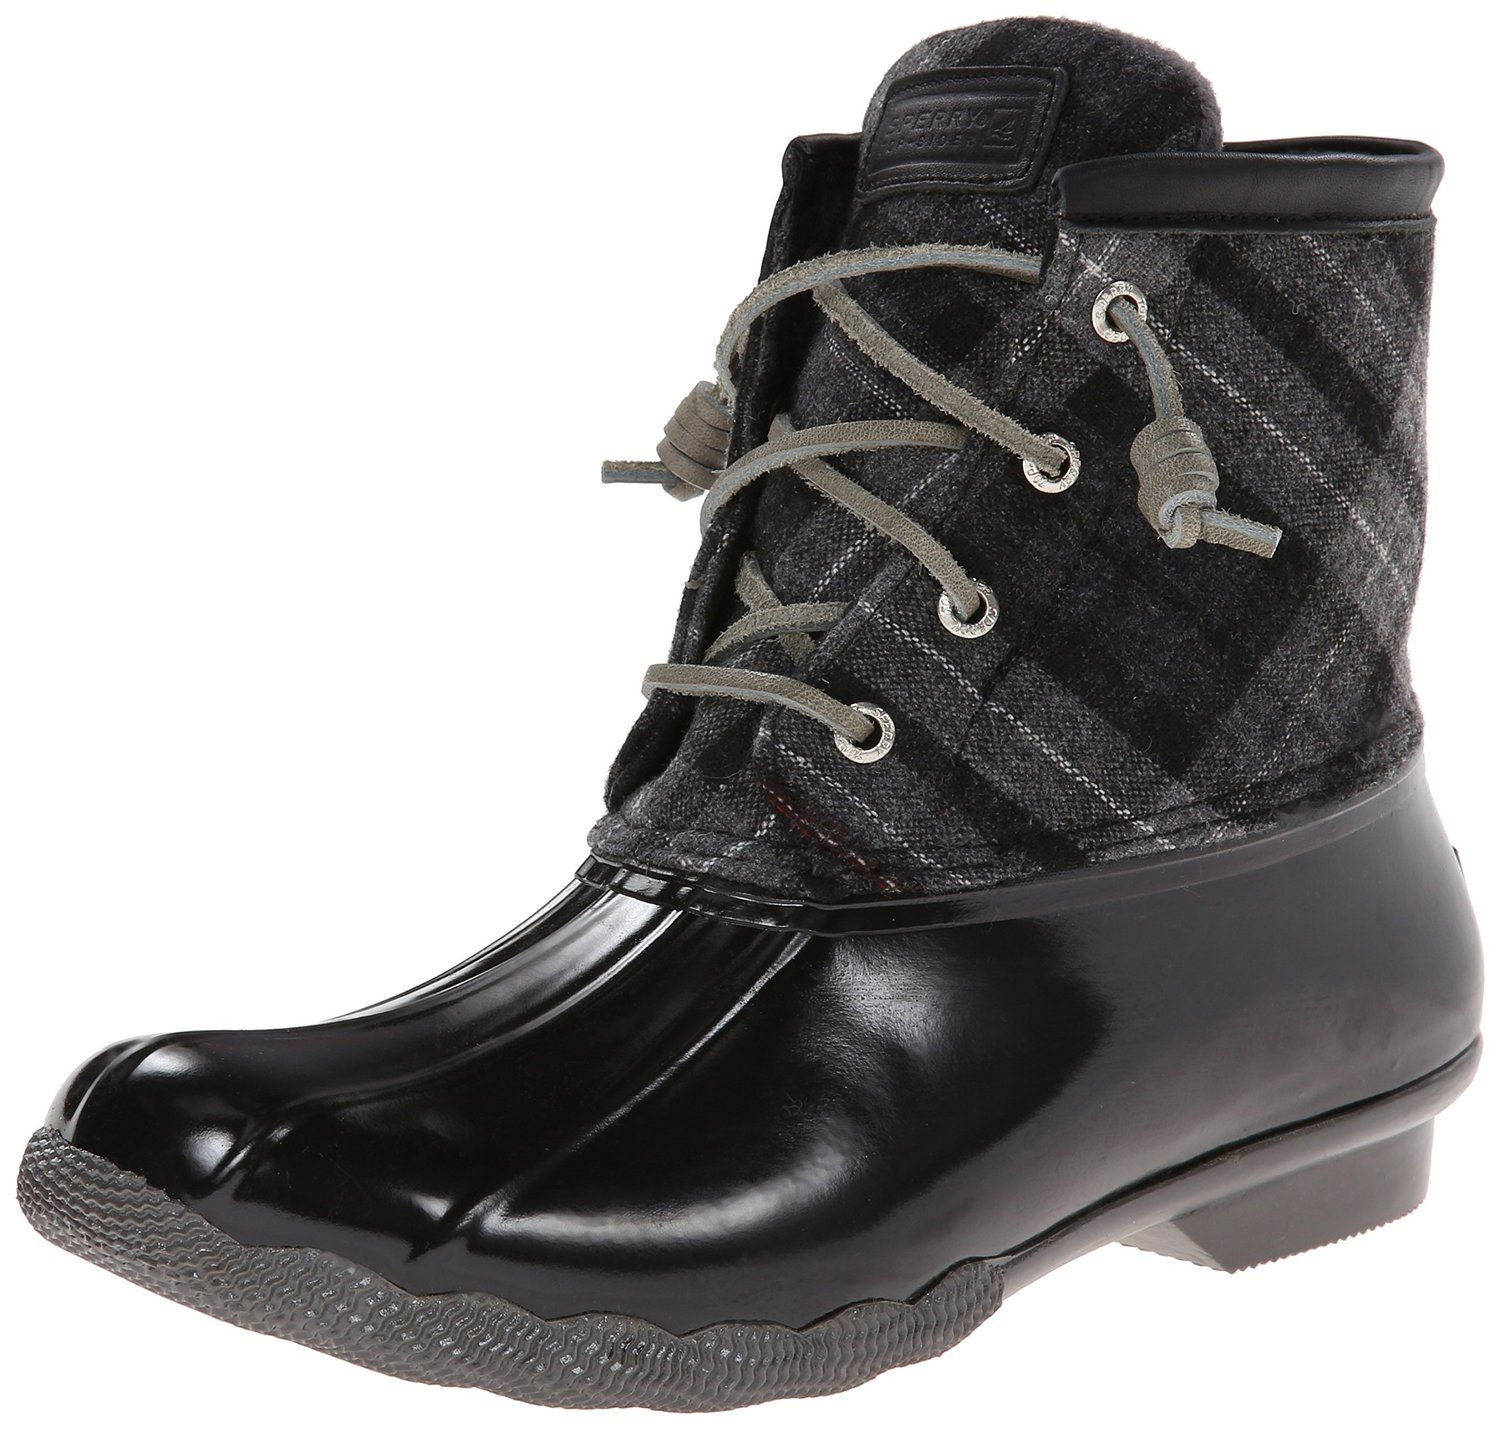 Sperry Top-Sider Duck Boots: 20% off through 11/21 <ad>